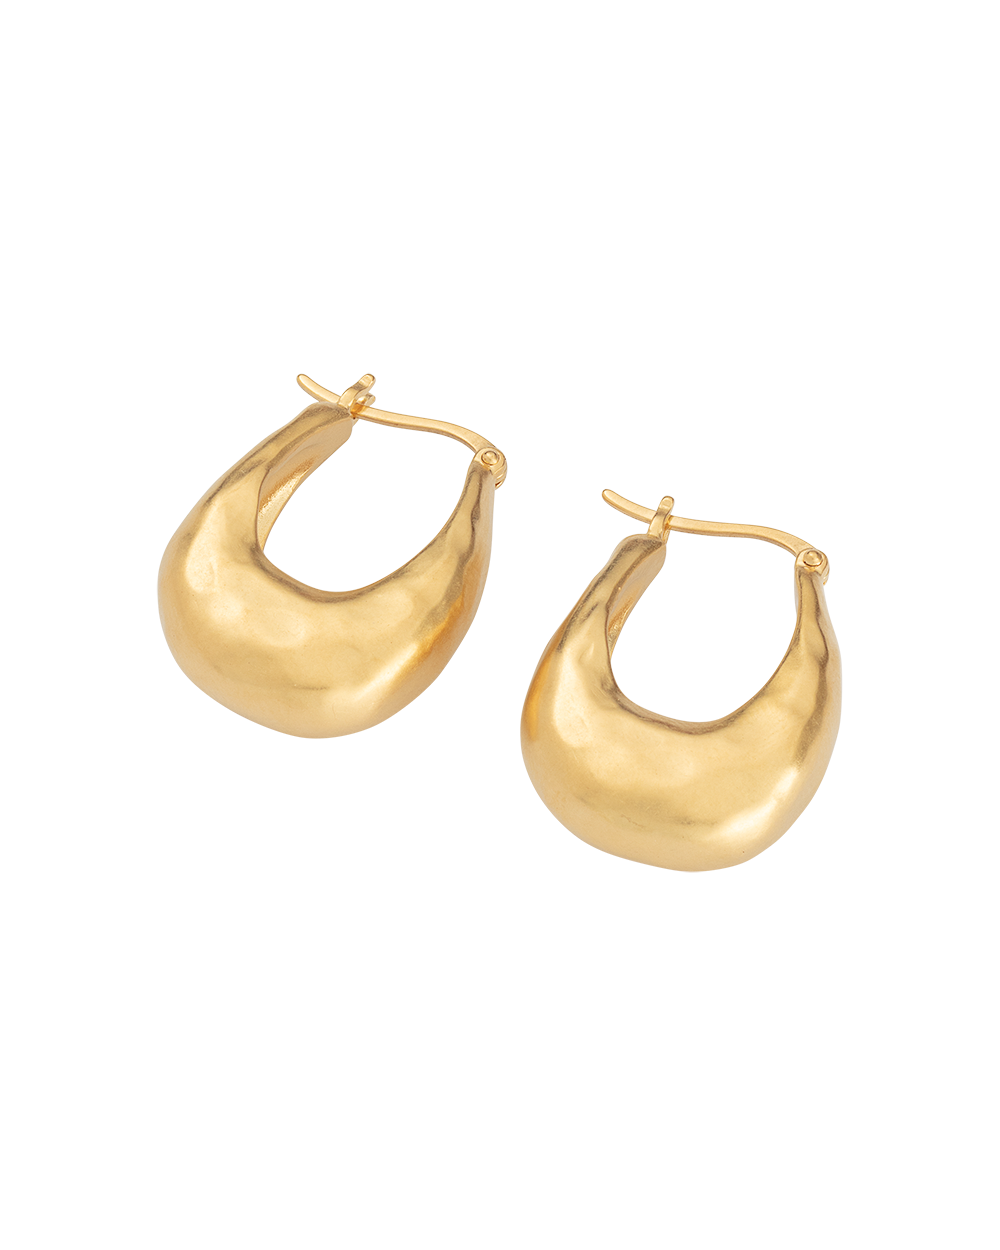 ESSENCE HOOPS MEDIUM (18K-GOLD-PLATED) - SIDE